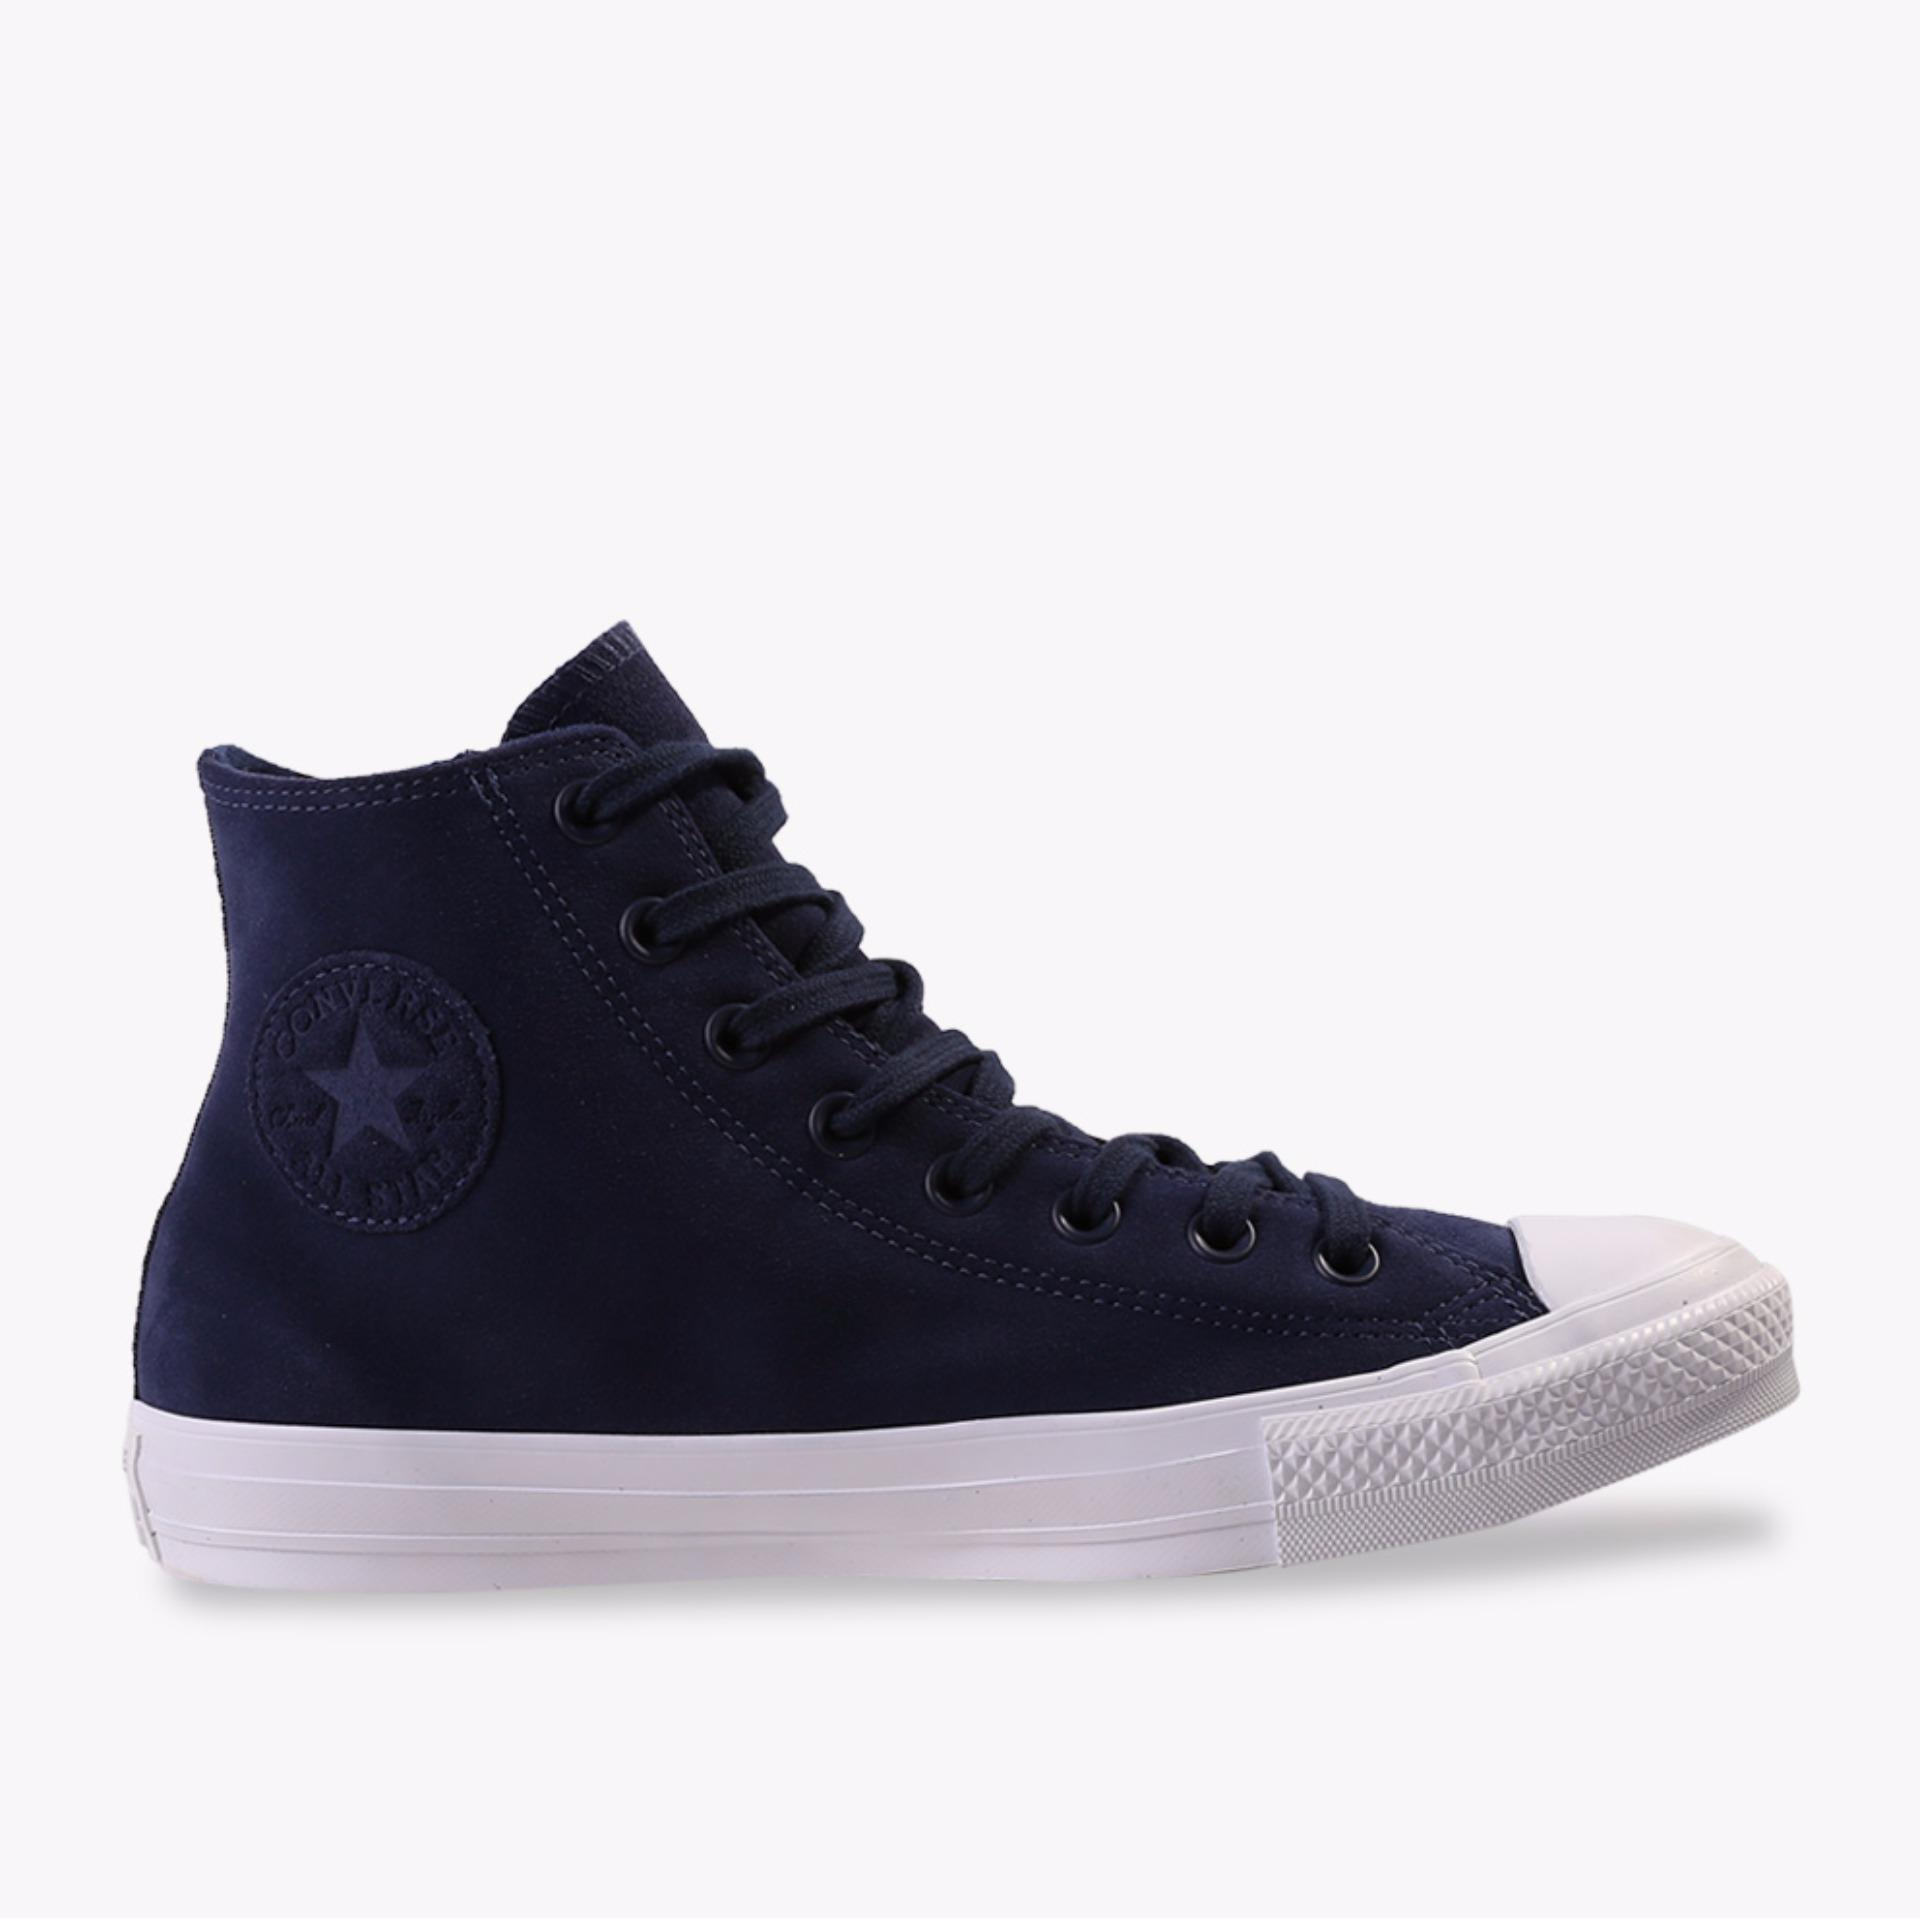 Spesifikasi Converse Chuck Taylor All Star Hi Men S Sneakers Shoes Navy Beserta Harganya